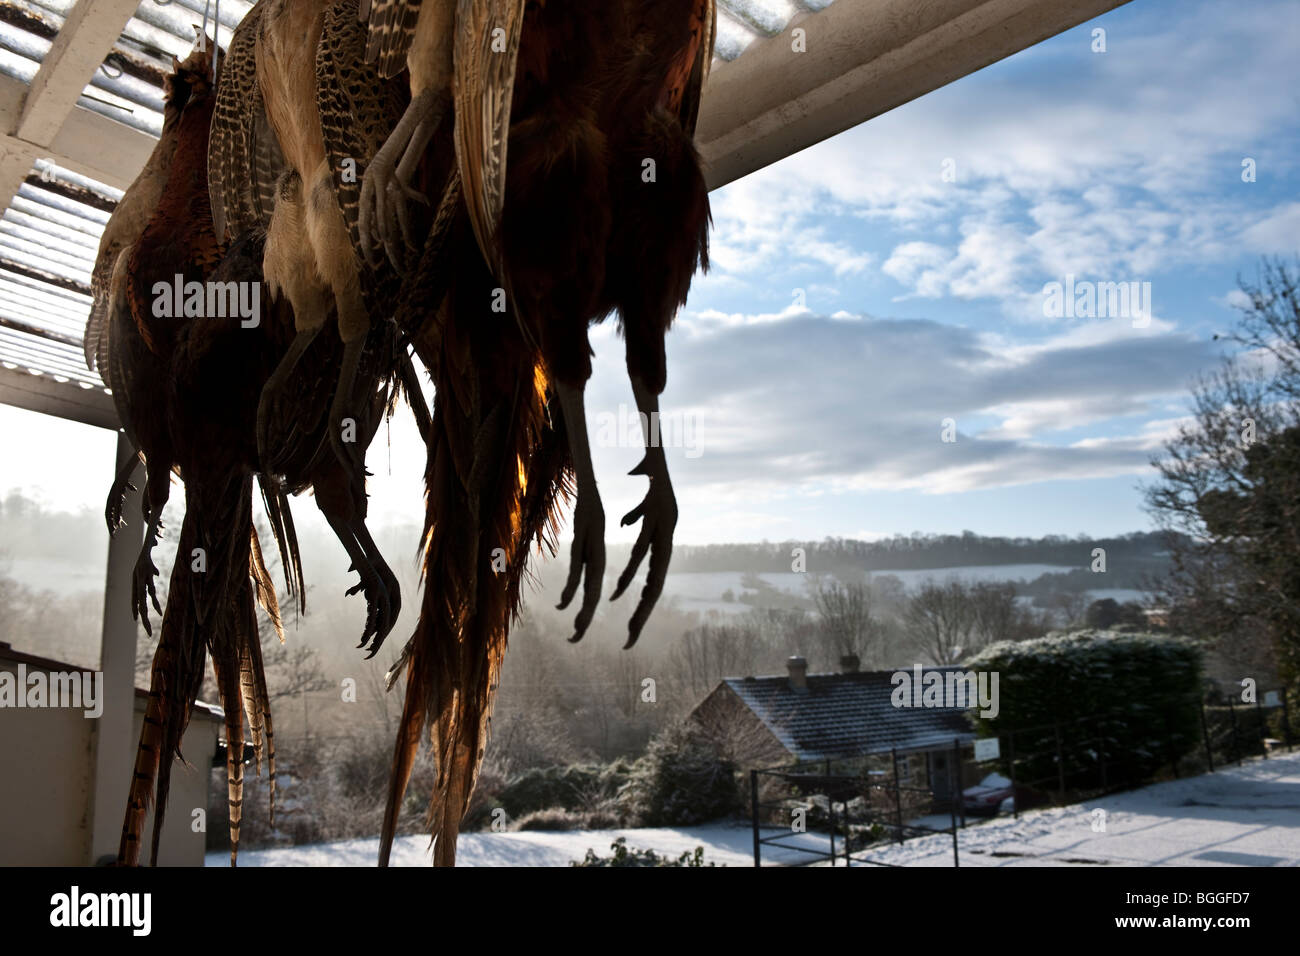 pheasants hanging outside in snow winter country - Stock Image